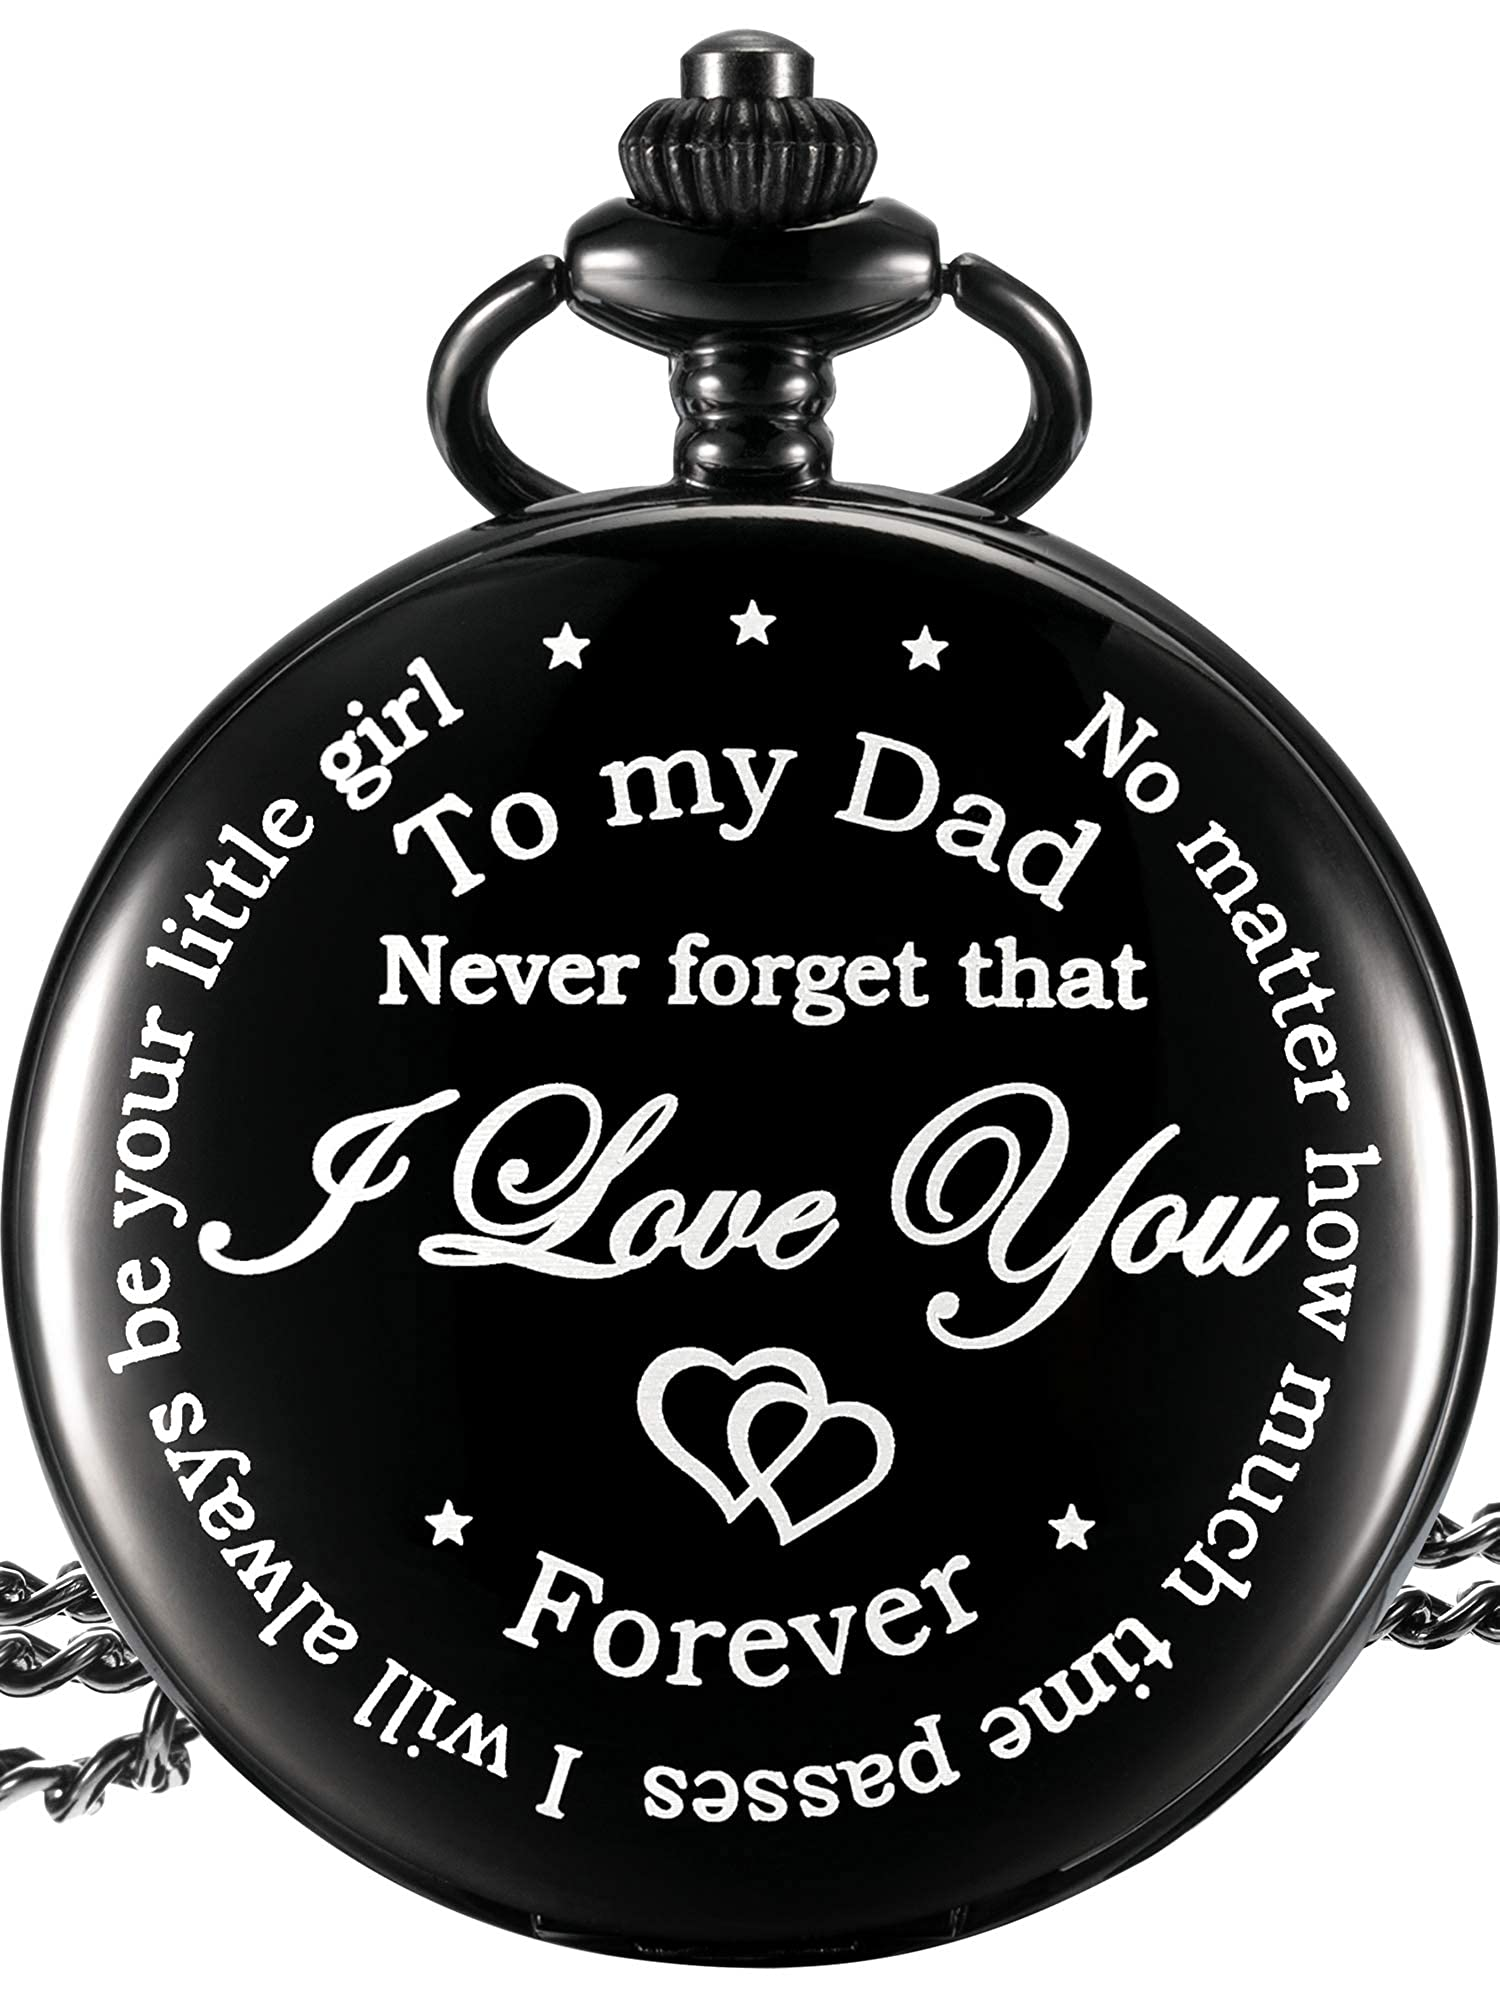 Personalized Pocket Watch For Dad